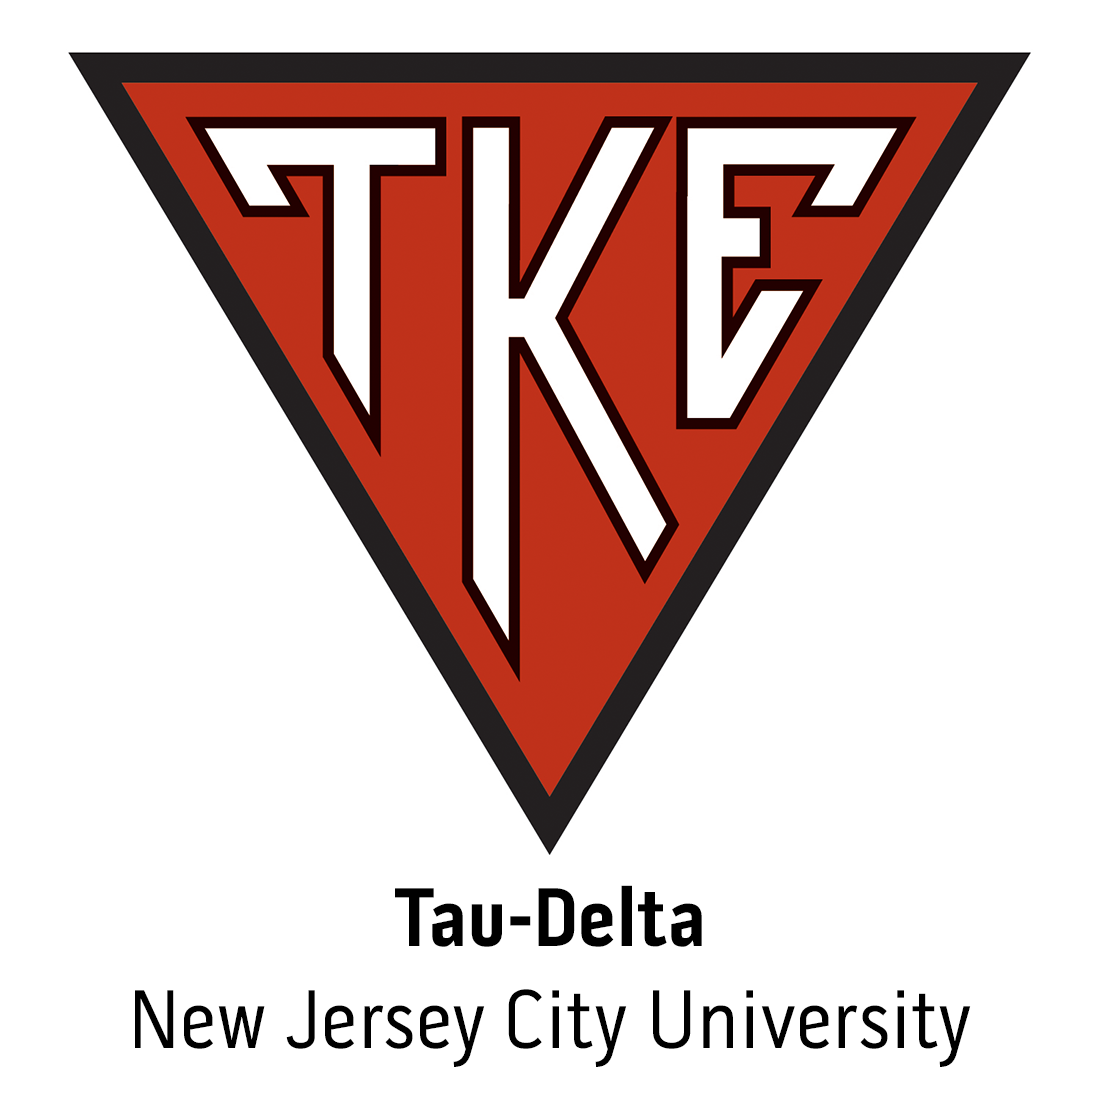 Tau-Delta Chapter at New Jersey City University